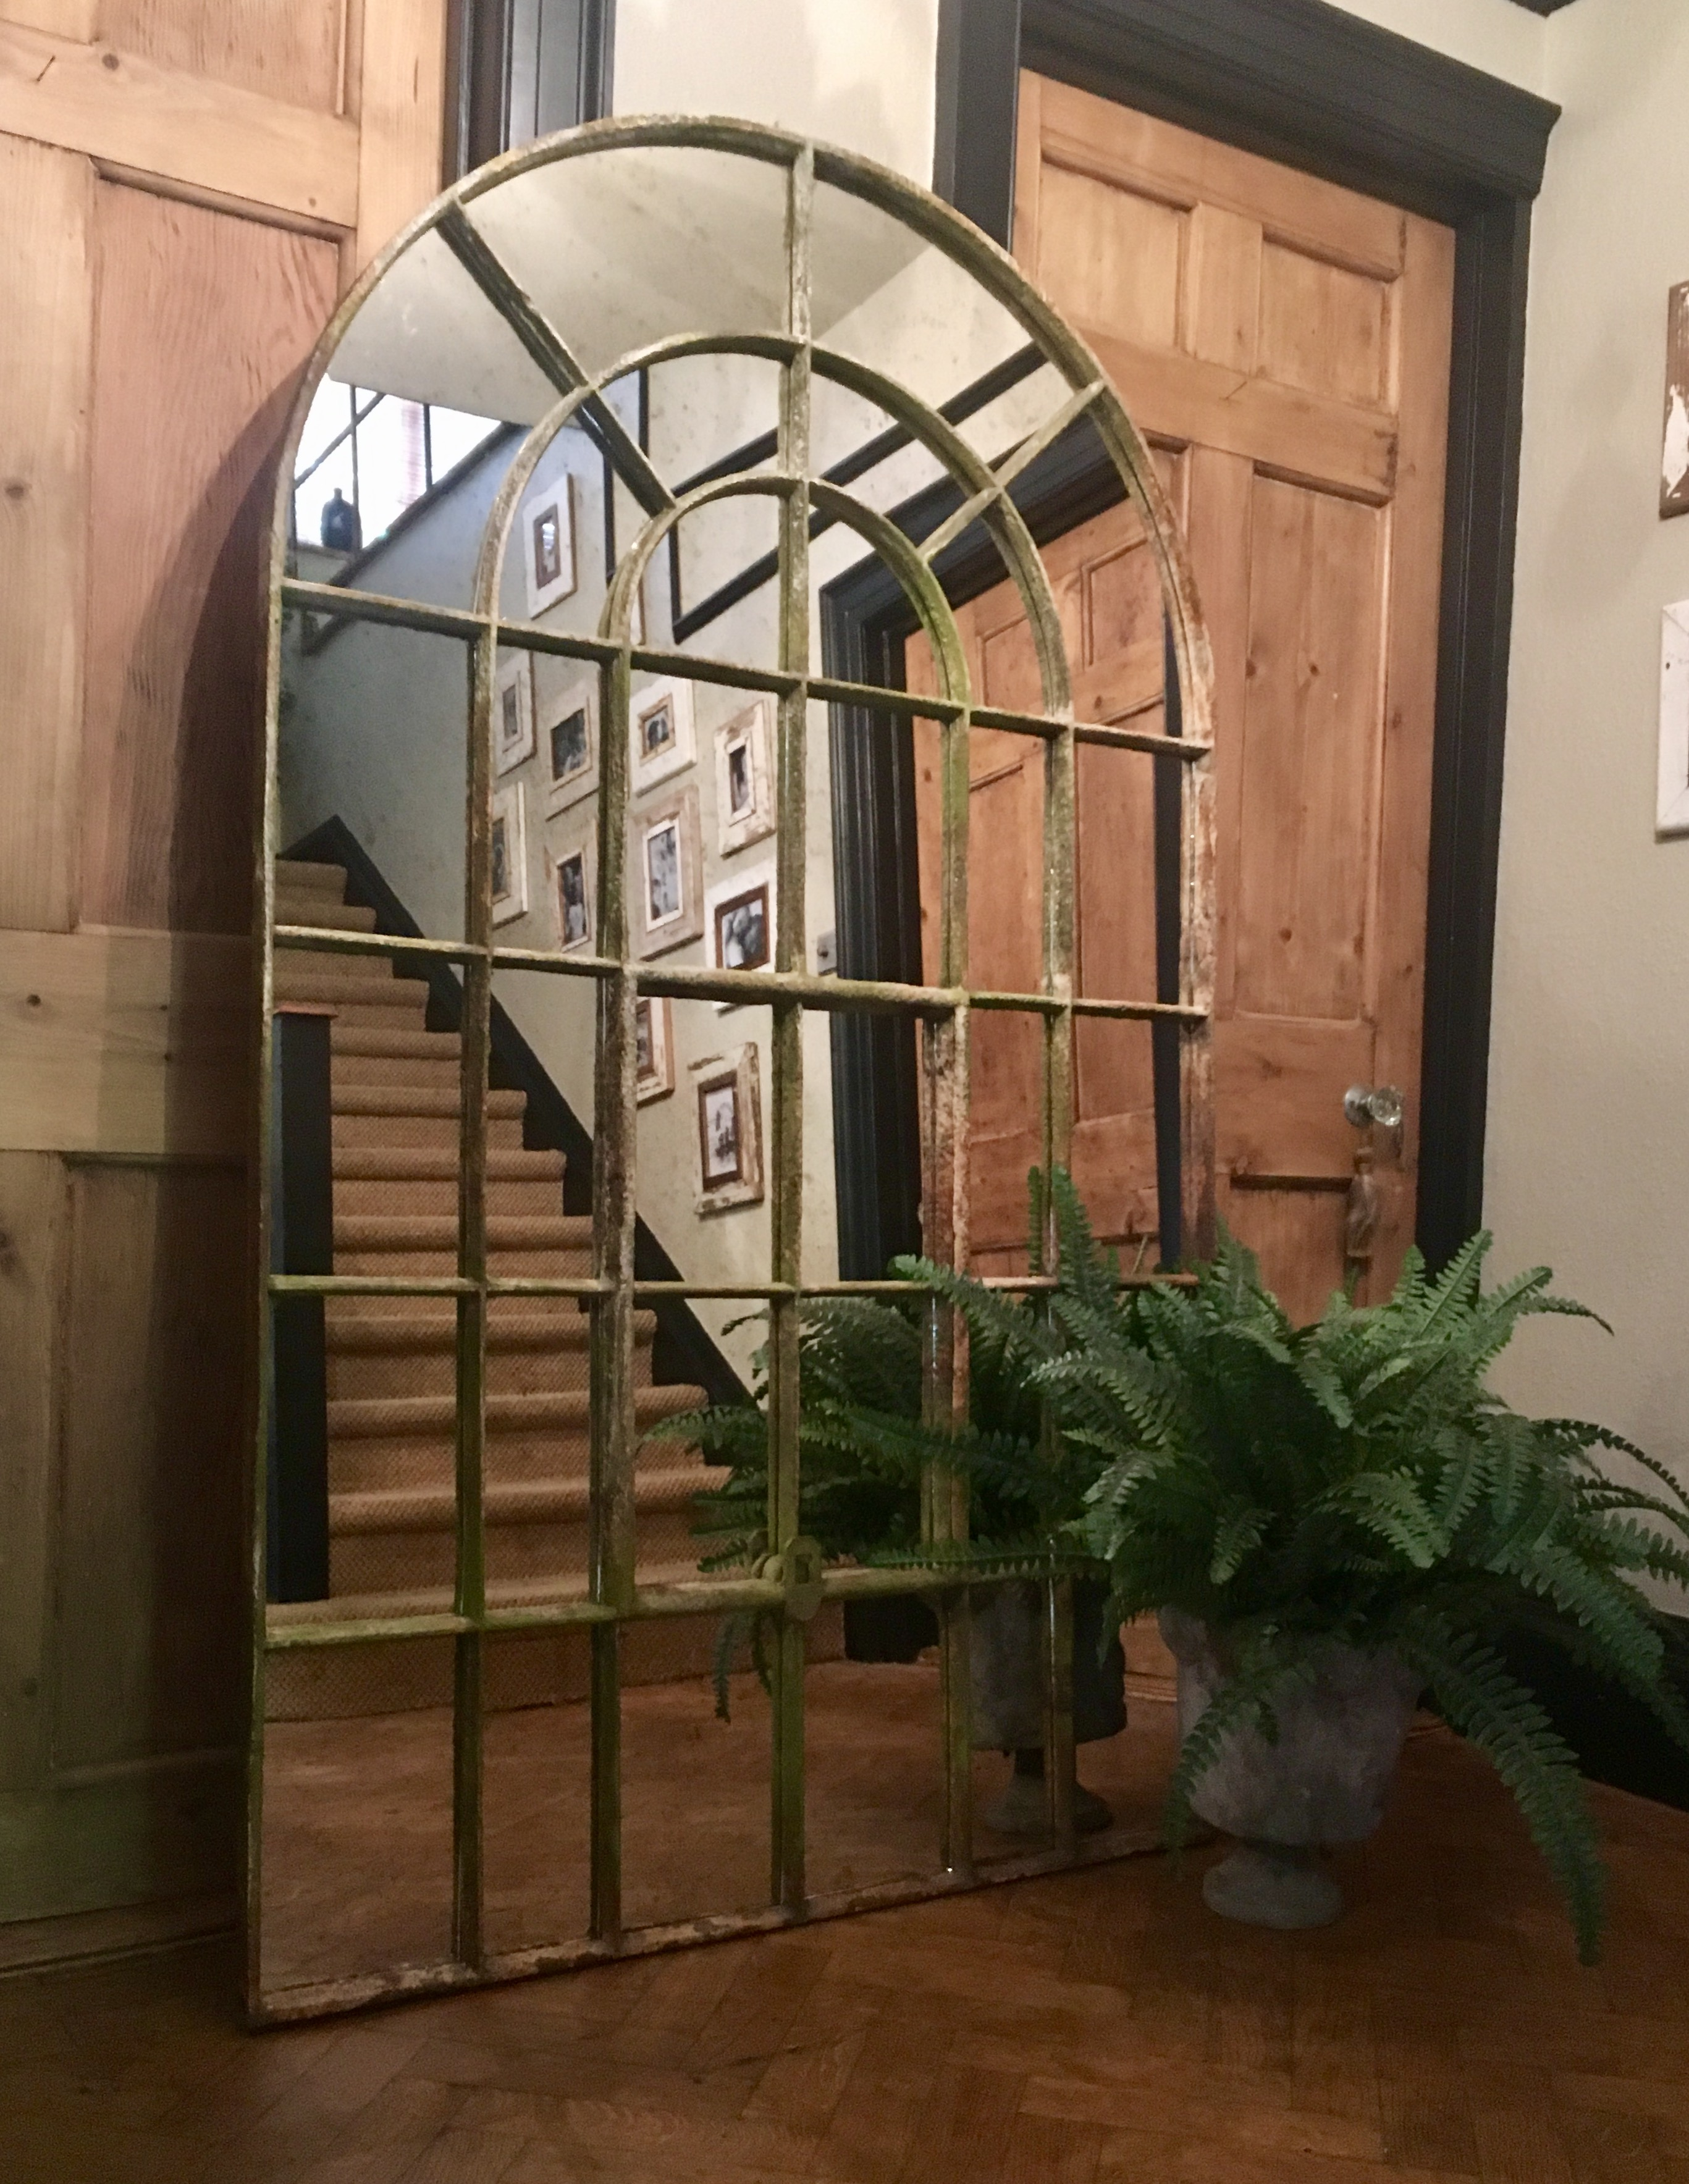 Completely new Industrial Factory Arch Window Mirror industrial-arched-factory  TT42